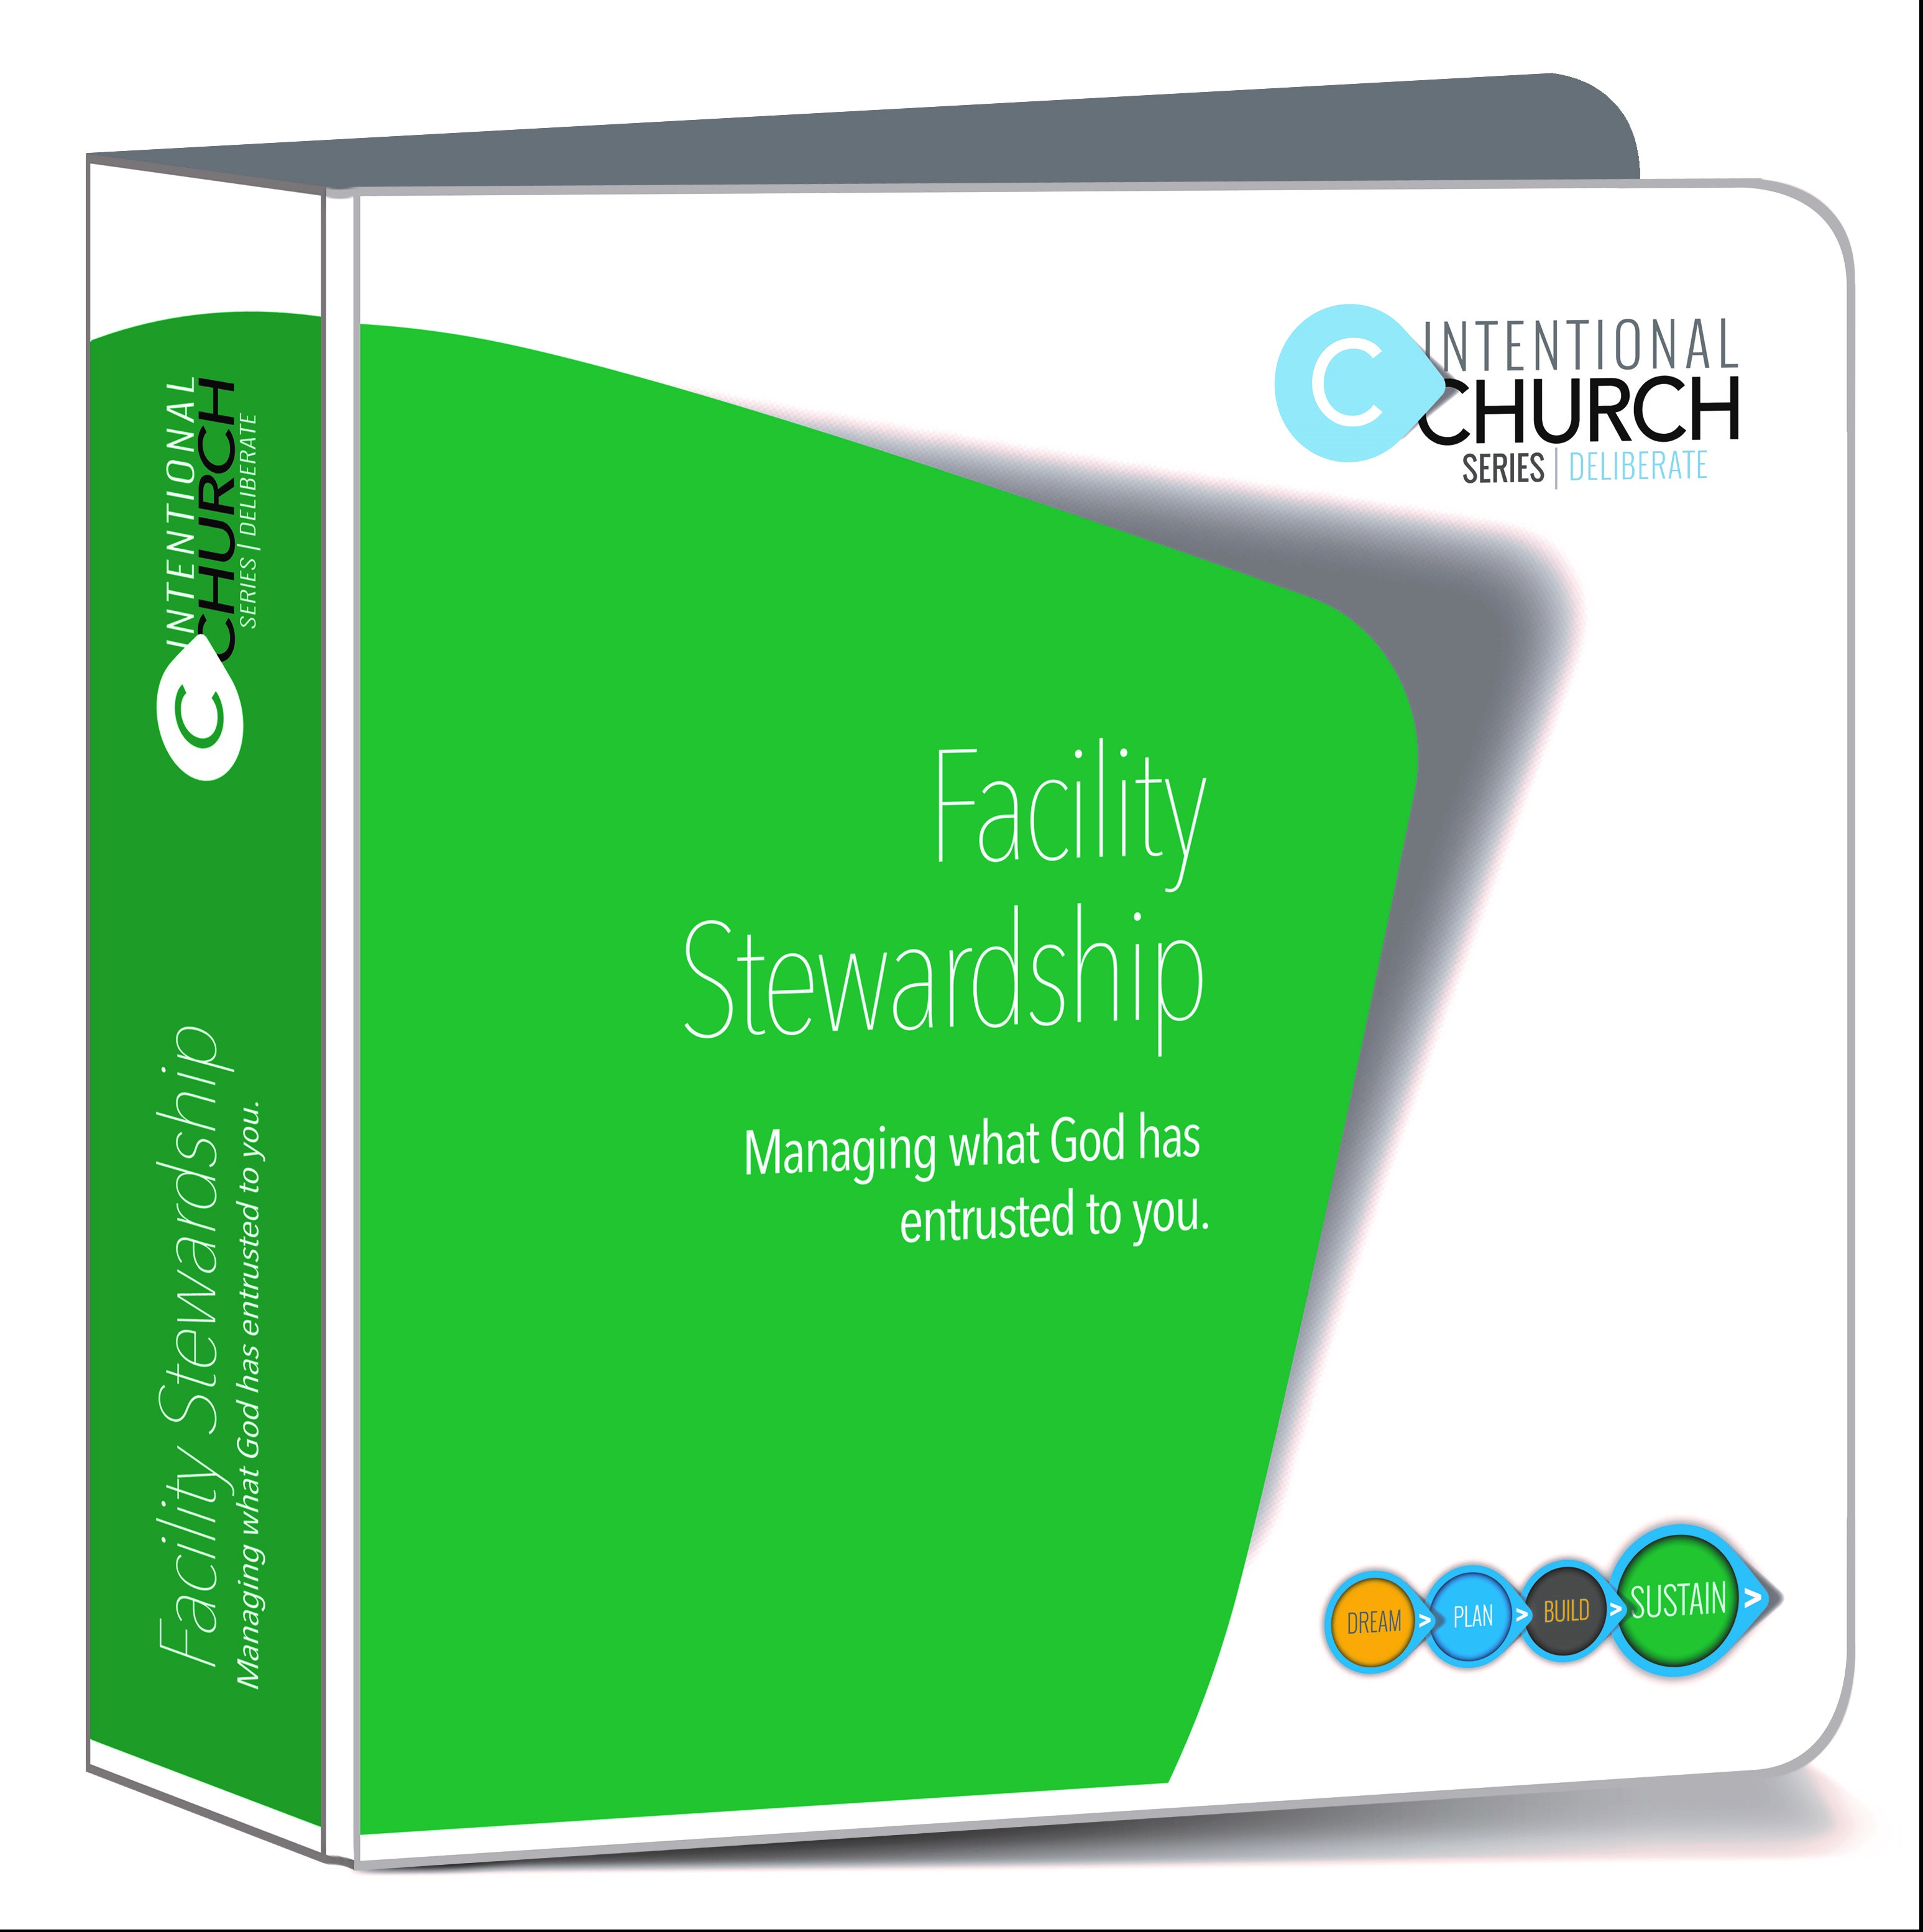 Facility Stewardship - Intentional Church Series Binder